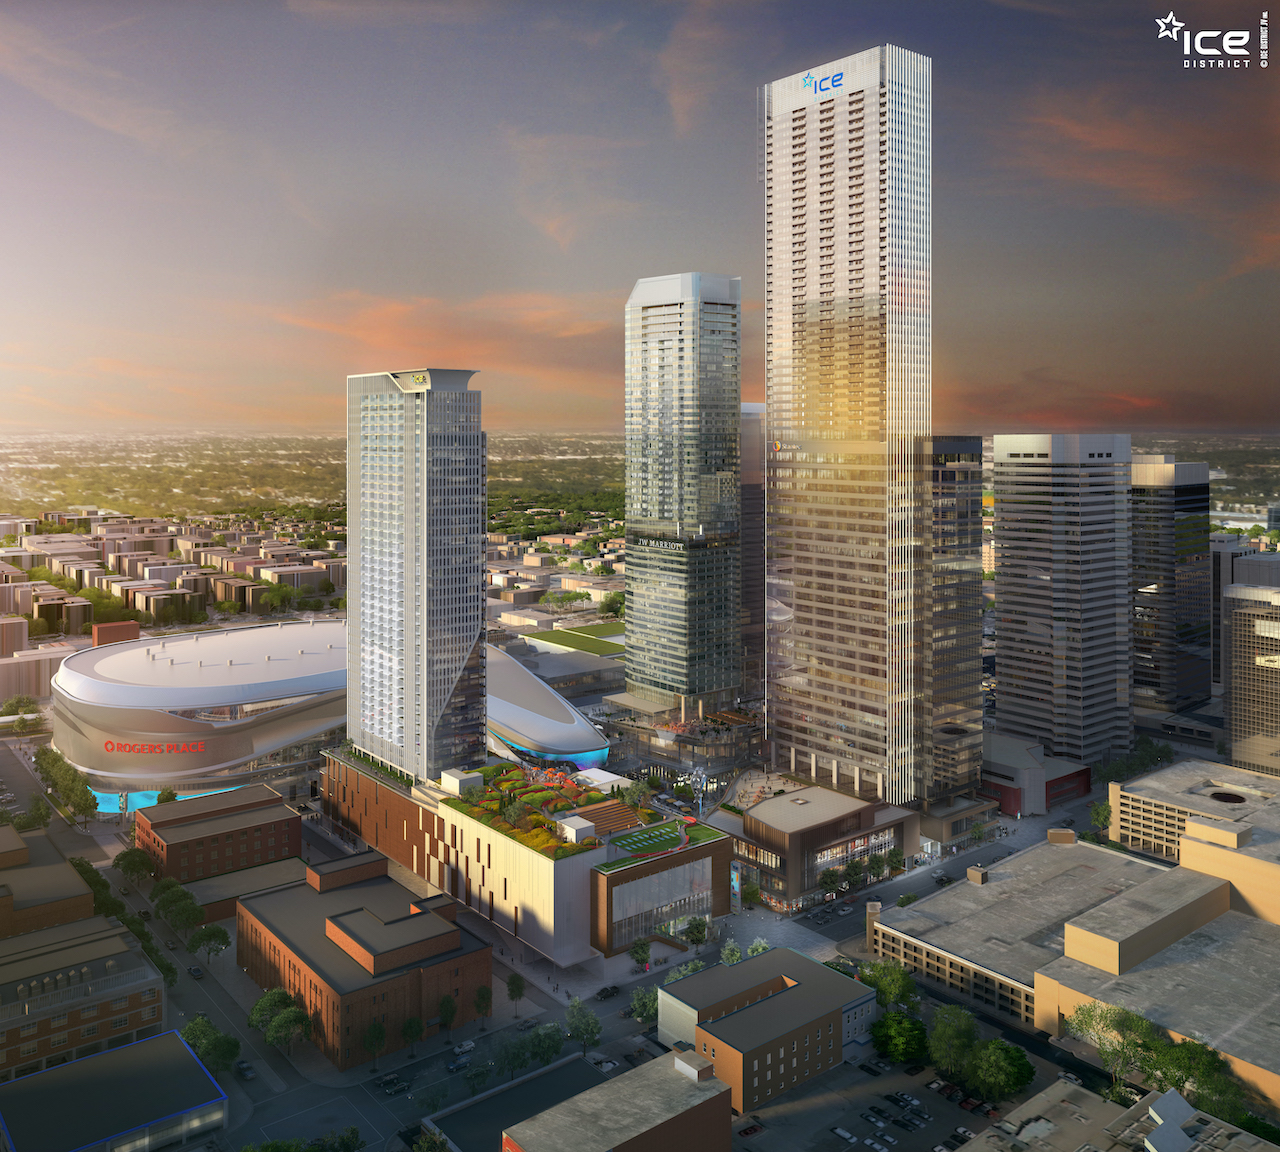 Rendering of SKY Residences at ICE District aerial view in the evening.